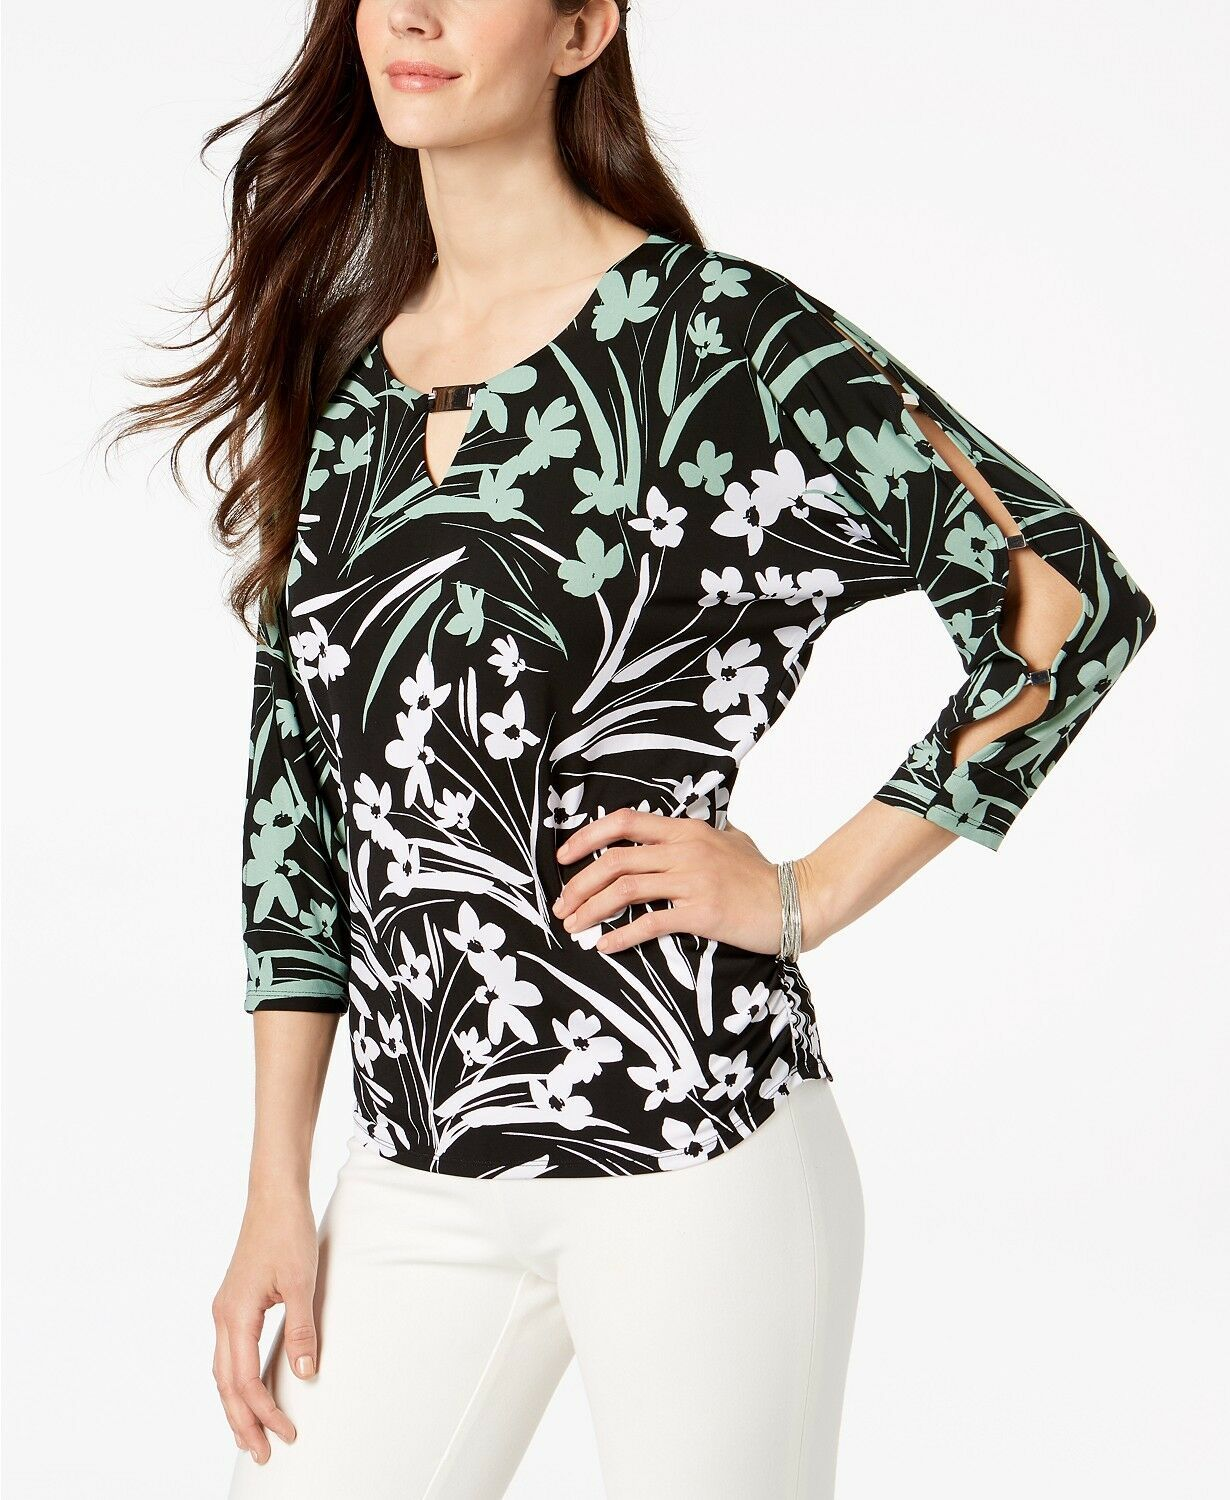 New JM Collection Printed Dolman-Sleeve T Shadow Blossom Blouse Shirt Top PETITE